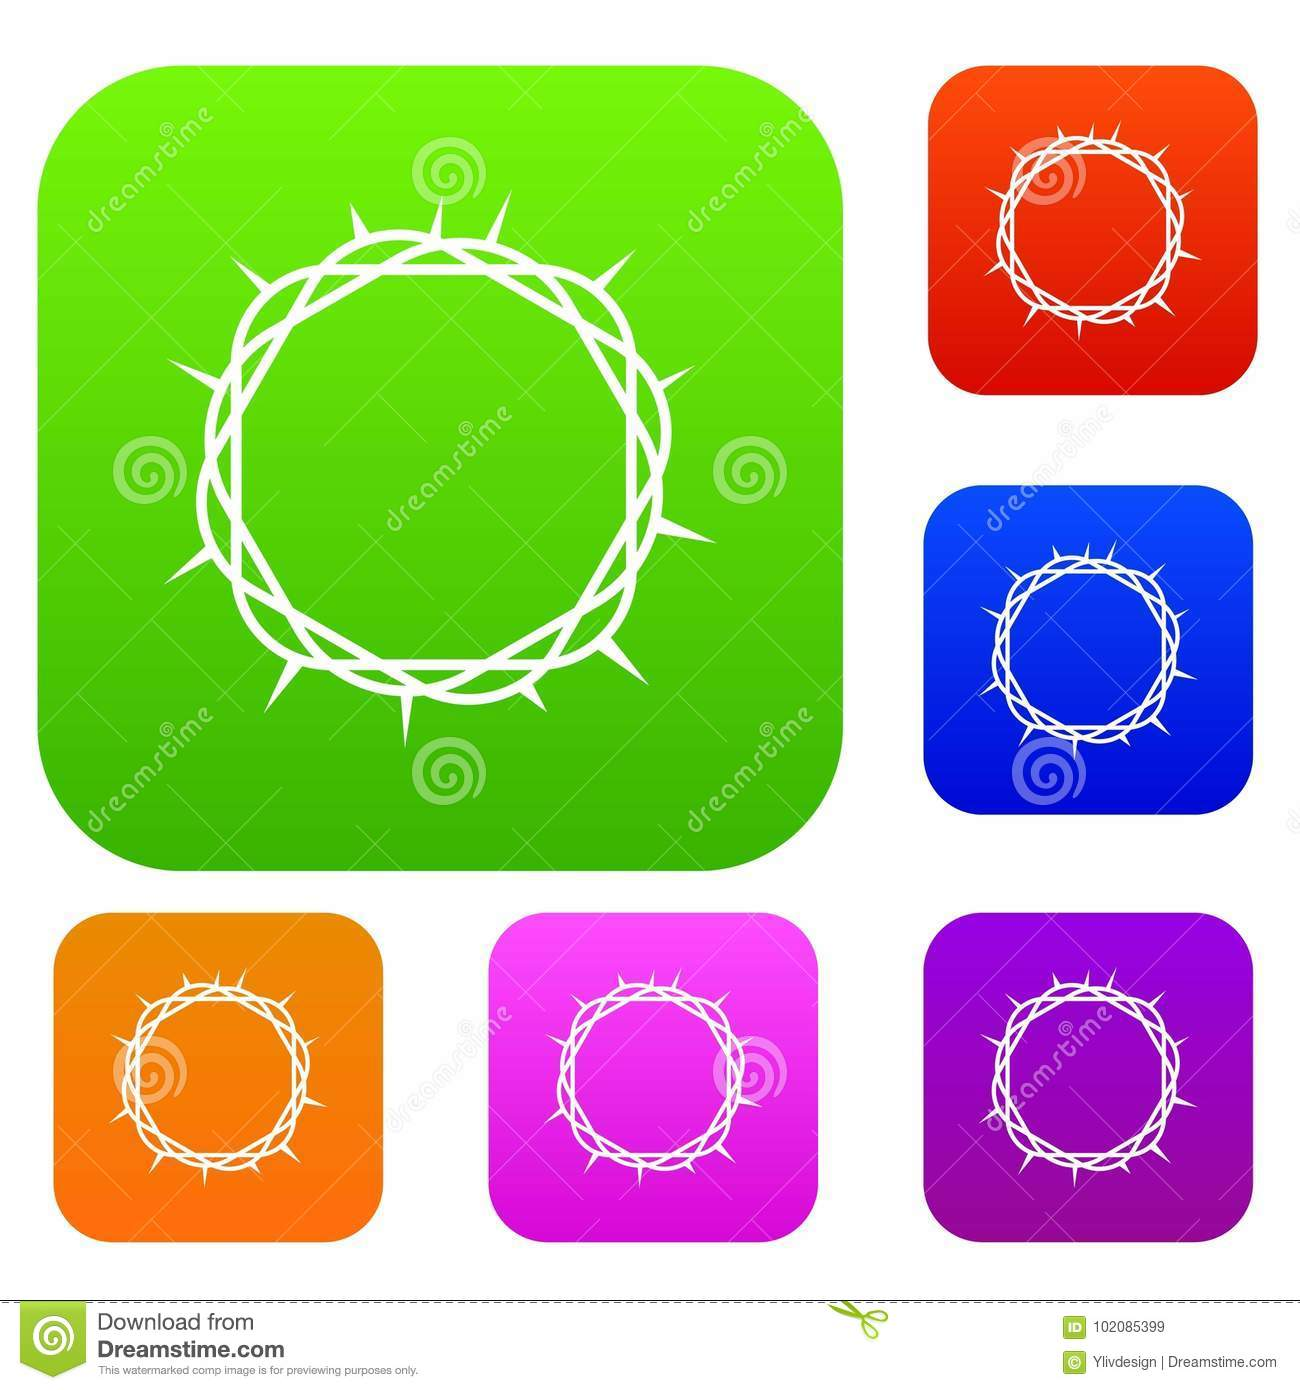 Crown Of Thorns Set Color Collection Stock Vector - Illustration of ...